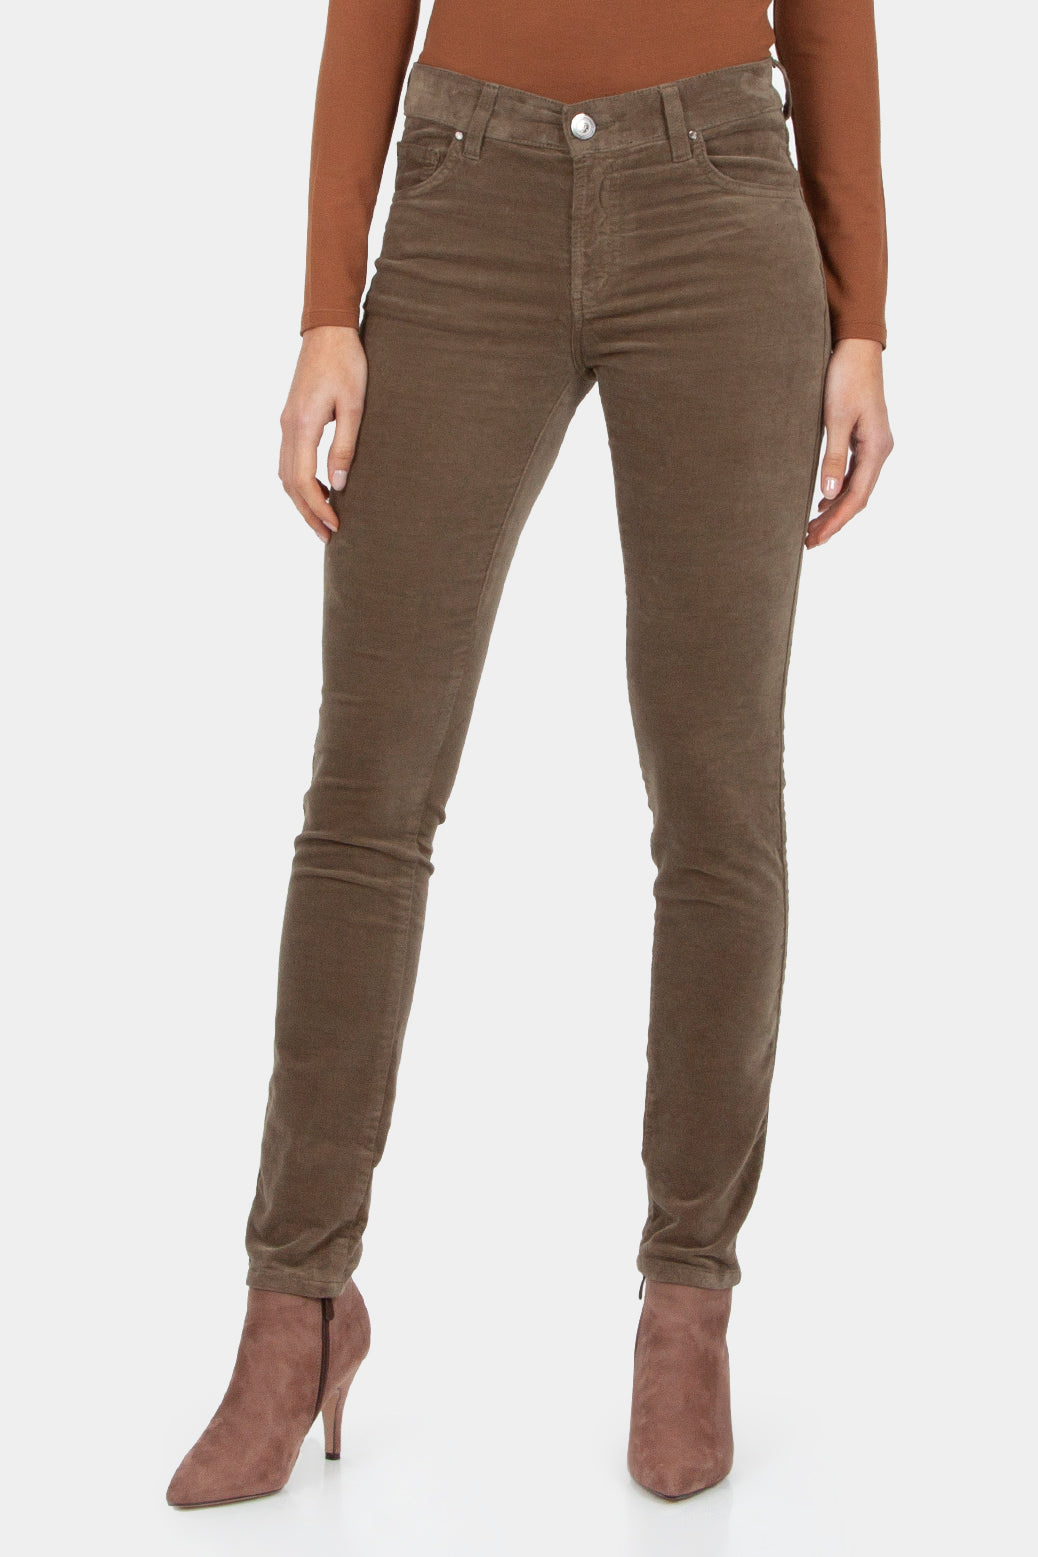 Khaki Suede Jeans with Diamante Pockets Trousers